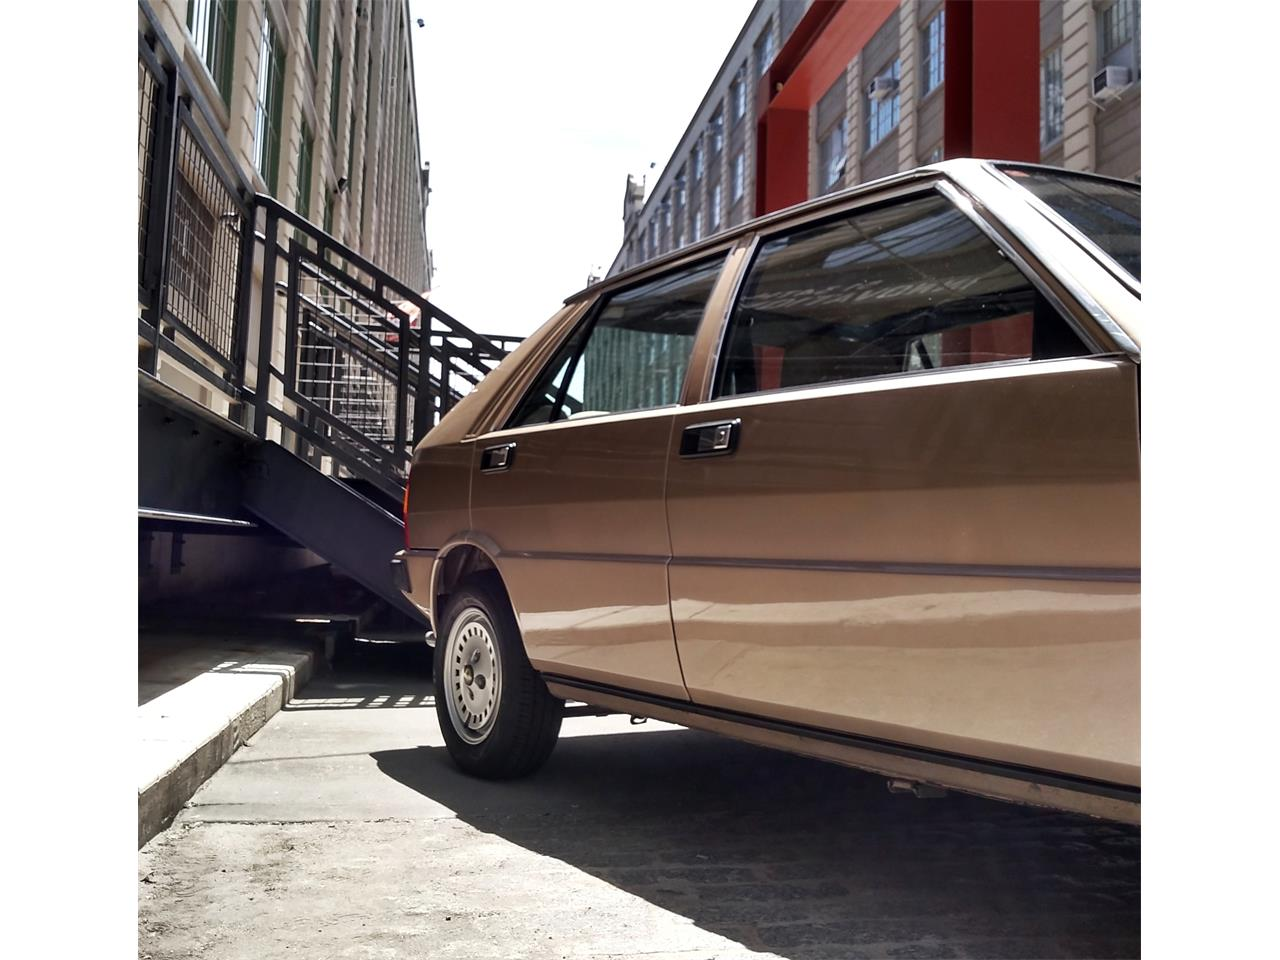 1982 Lancia Delta for sale in Brooklyn, NY – photo 13